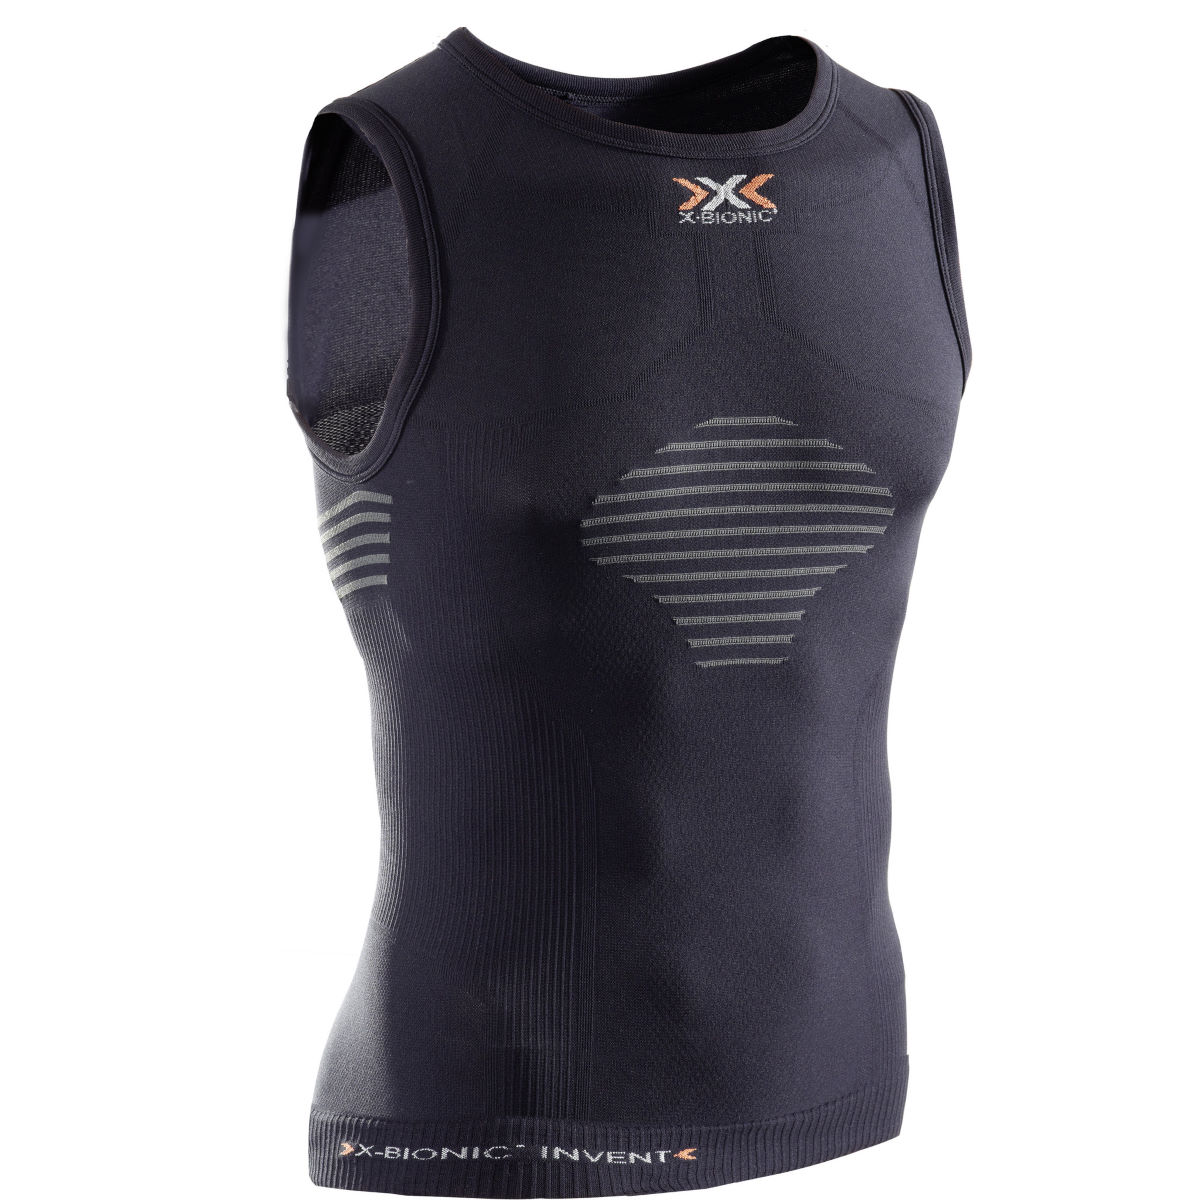 Maillot X-BIONIC Invent Light UW (sans manches) - Extra Extra Large Noir Sous-vêtements compression